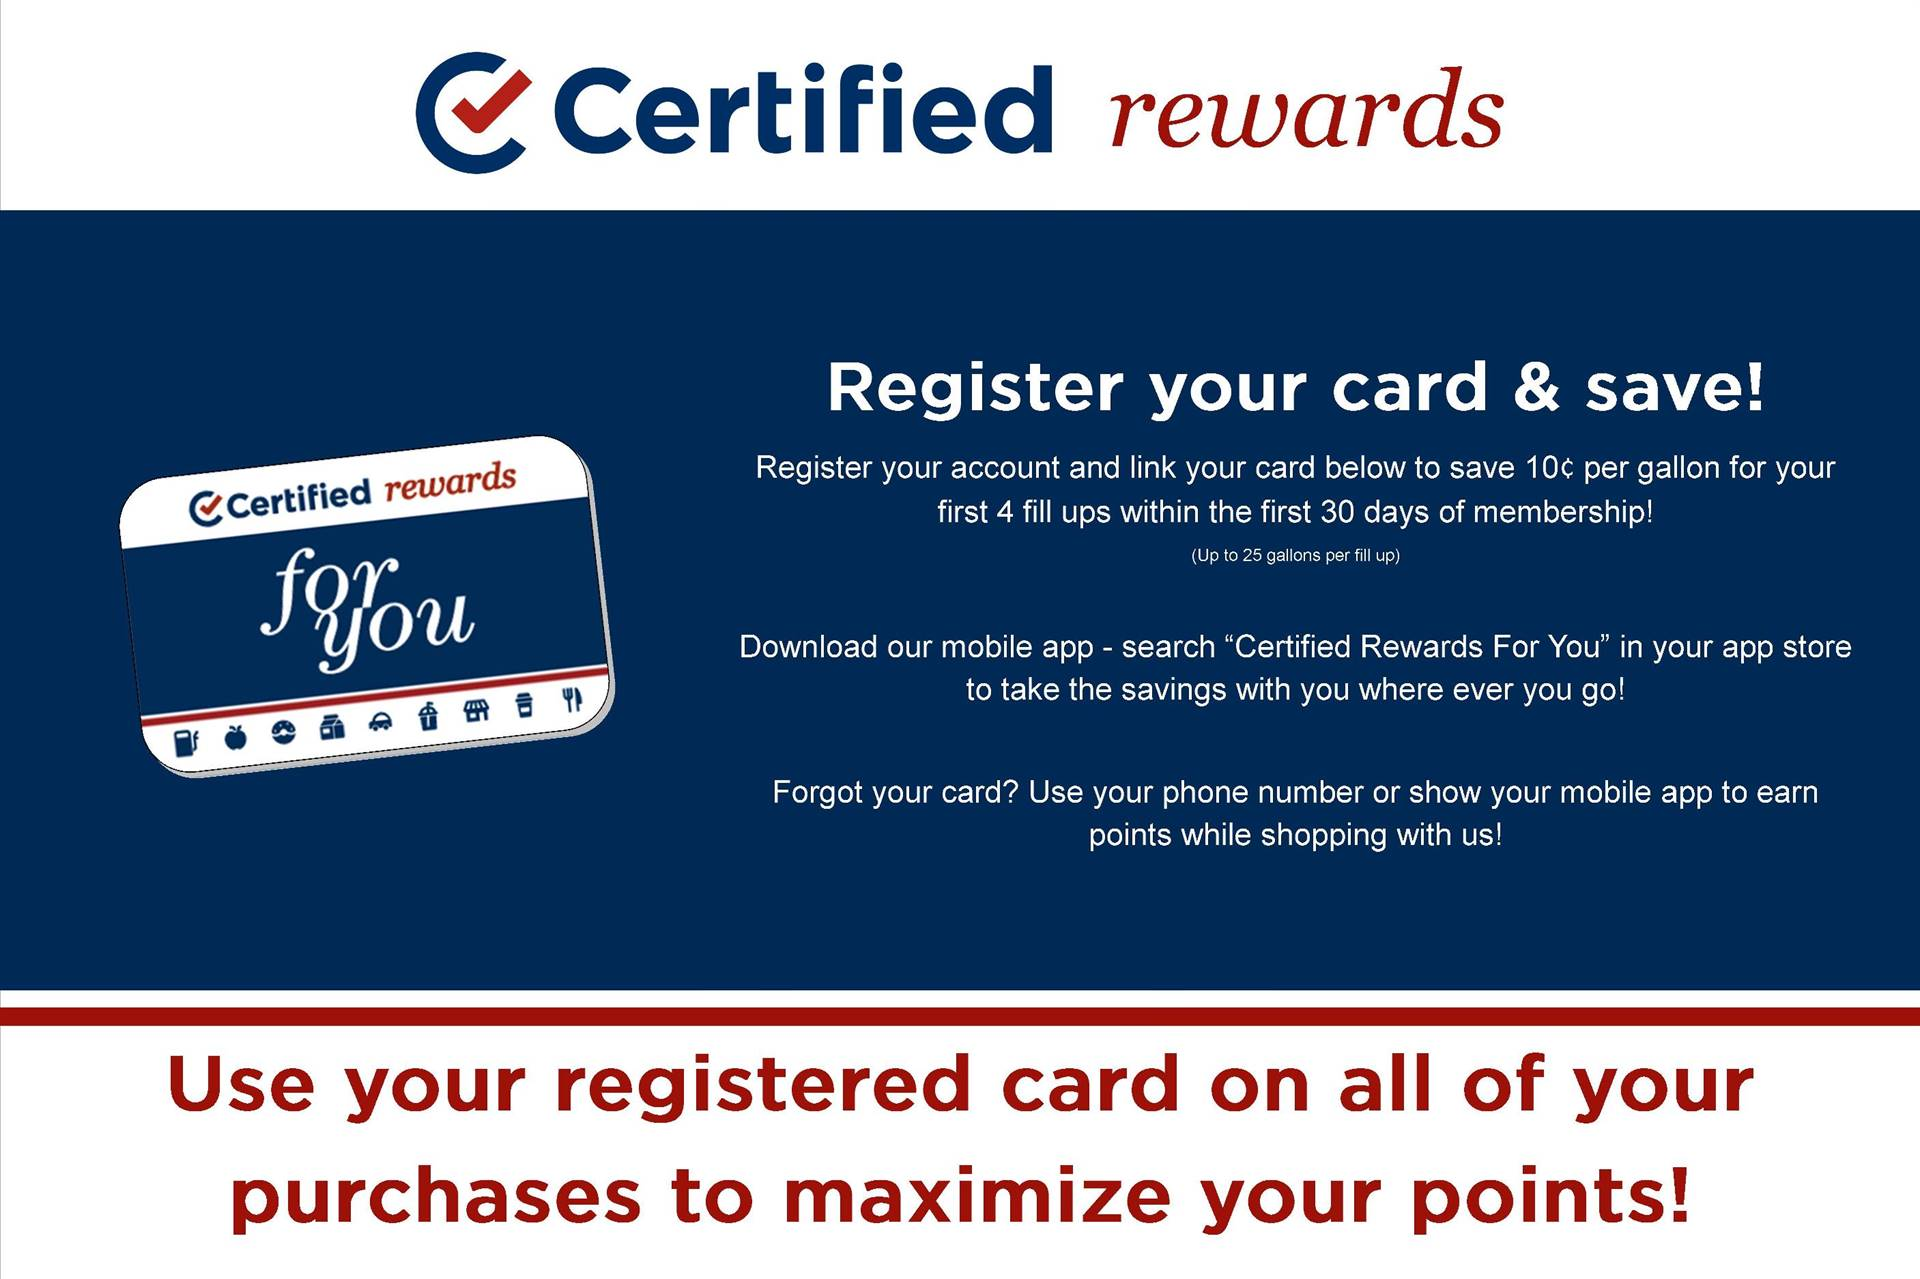 Certified Rewards - Register Your Card & Save